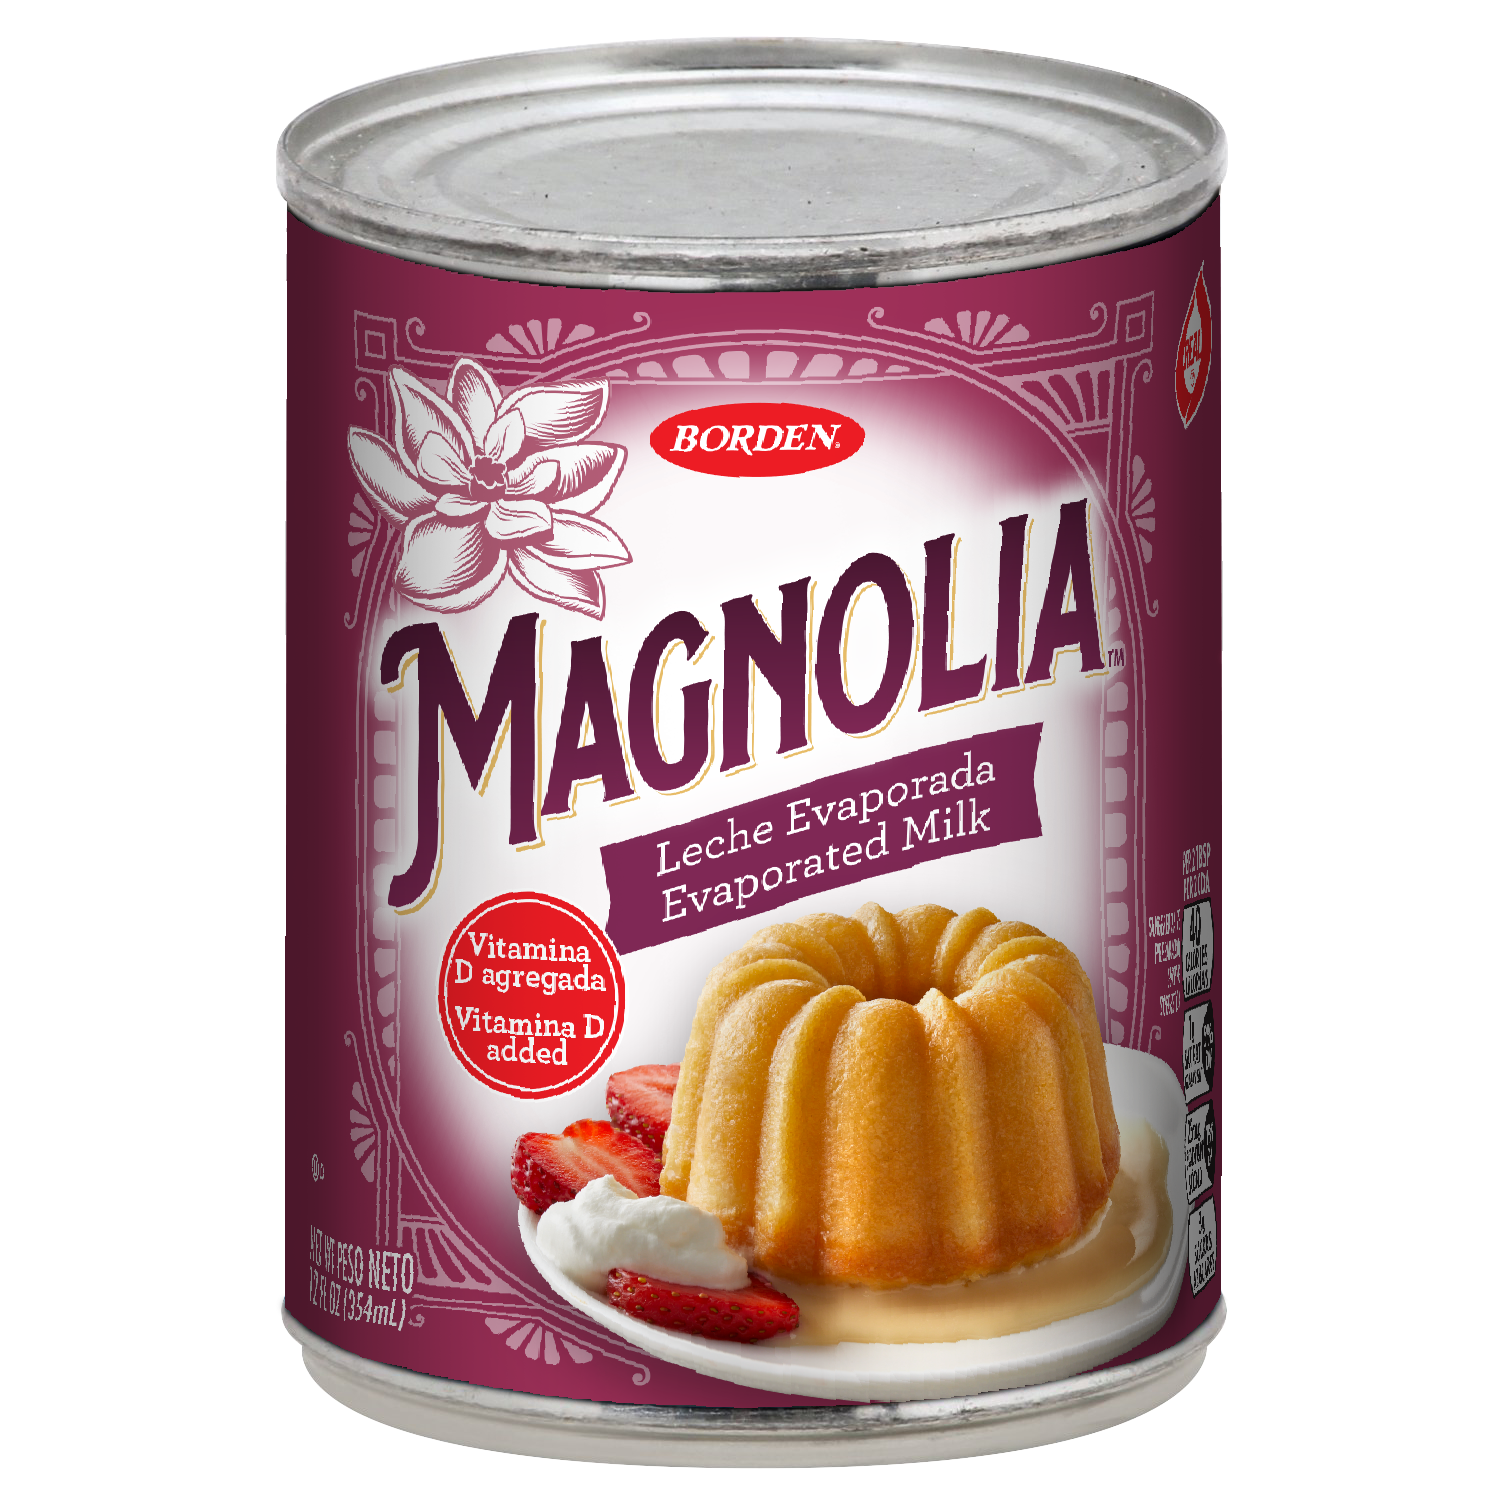 Leche Evaporada Magnolia Evaporated Milk